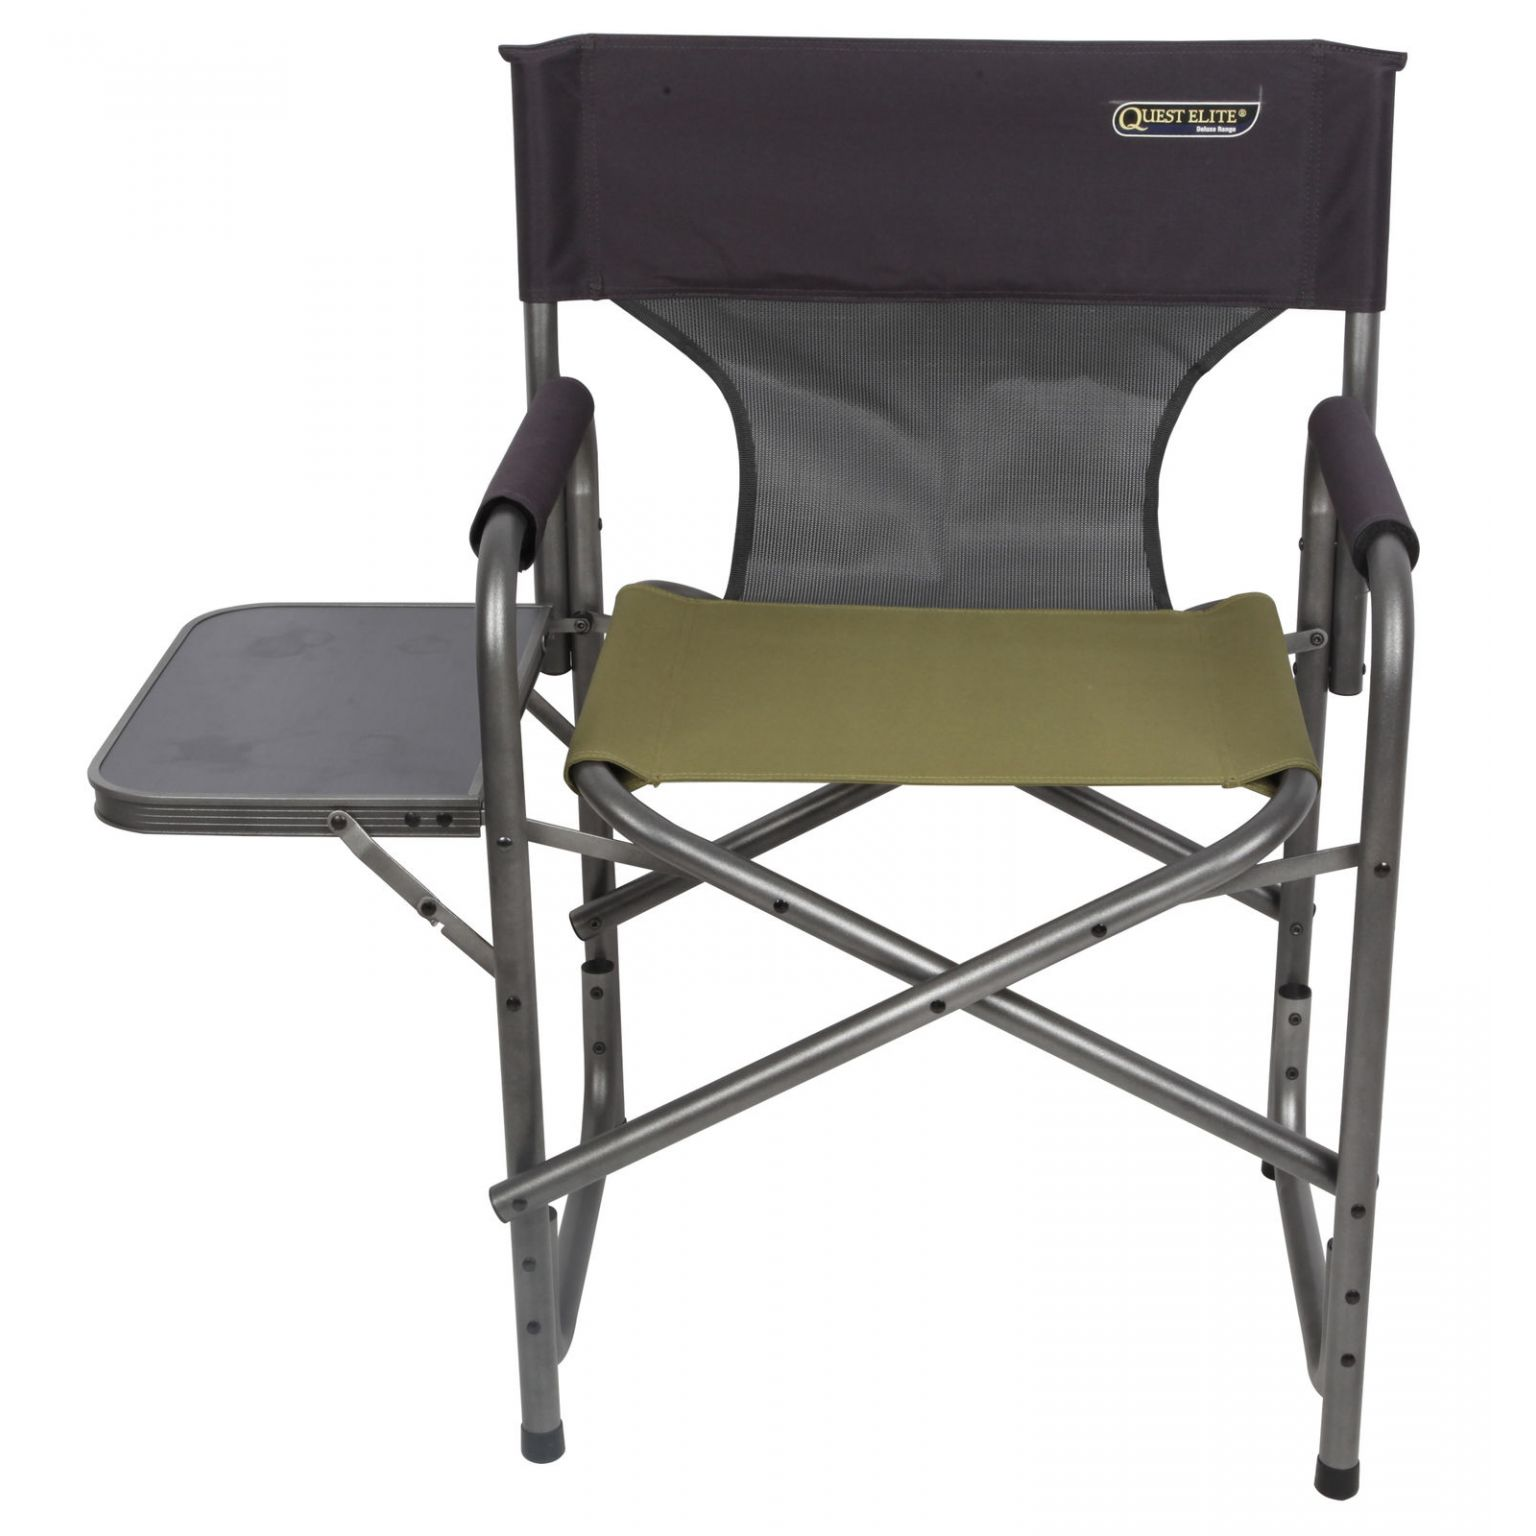 Magnificent Quest Elite Surrey Deluxe Folding Sage Camping Chair Pabps2019 Chair Design Images Pabps2019Com